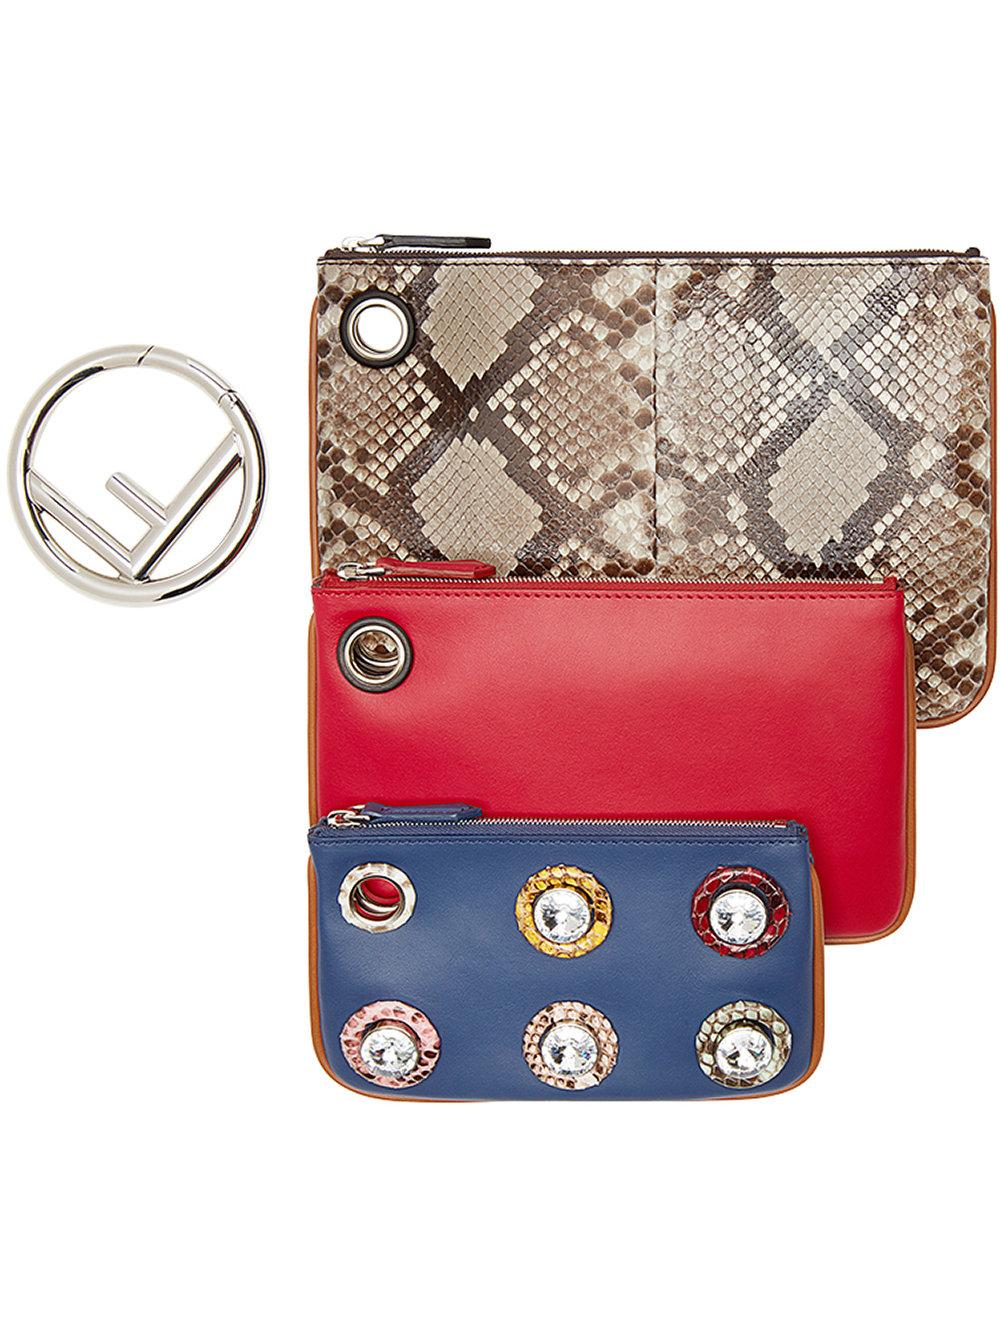 5eebc4fc2852 FENDI. Triplette Clutch.  2290 2290. Available From 0 Store